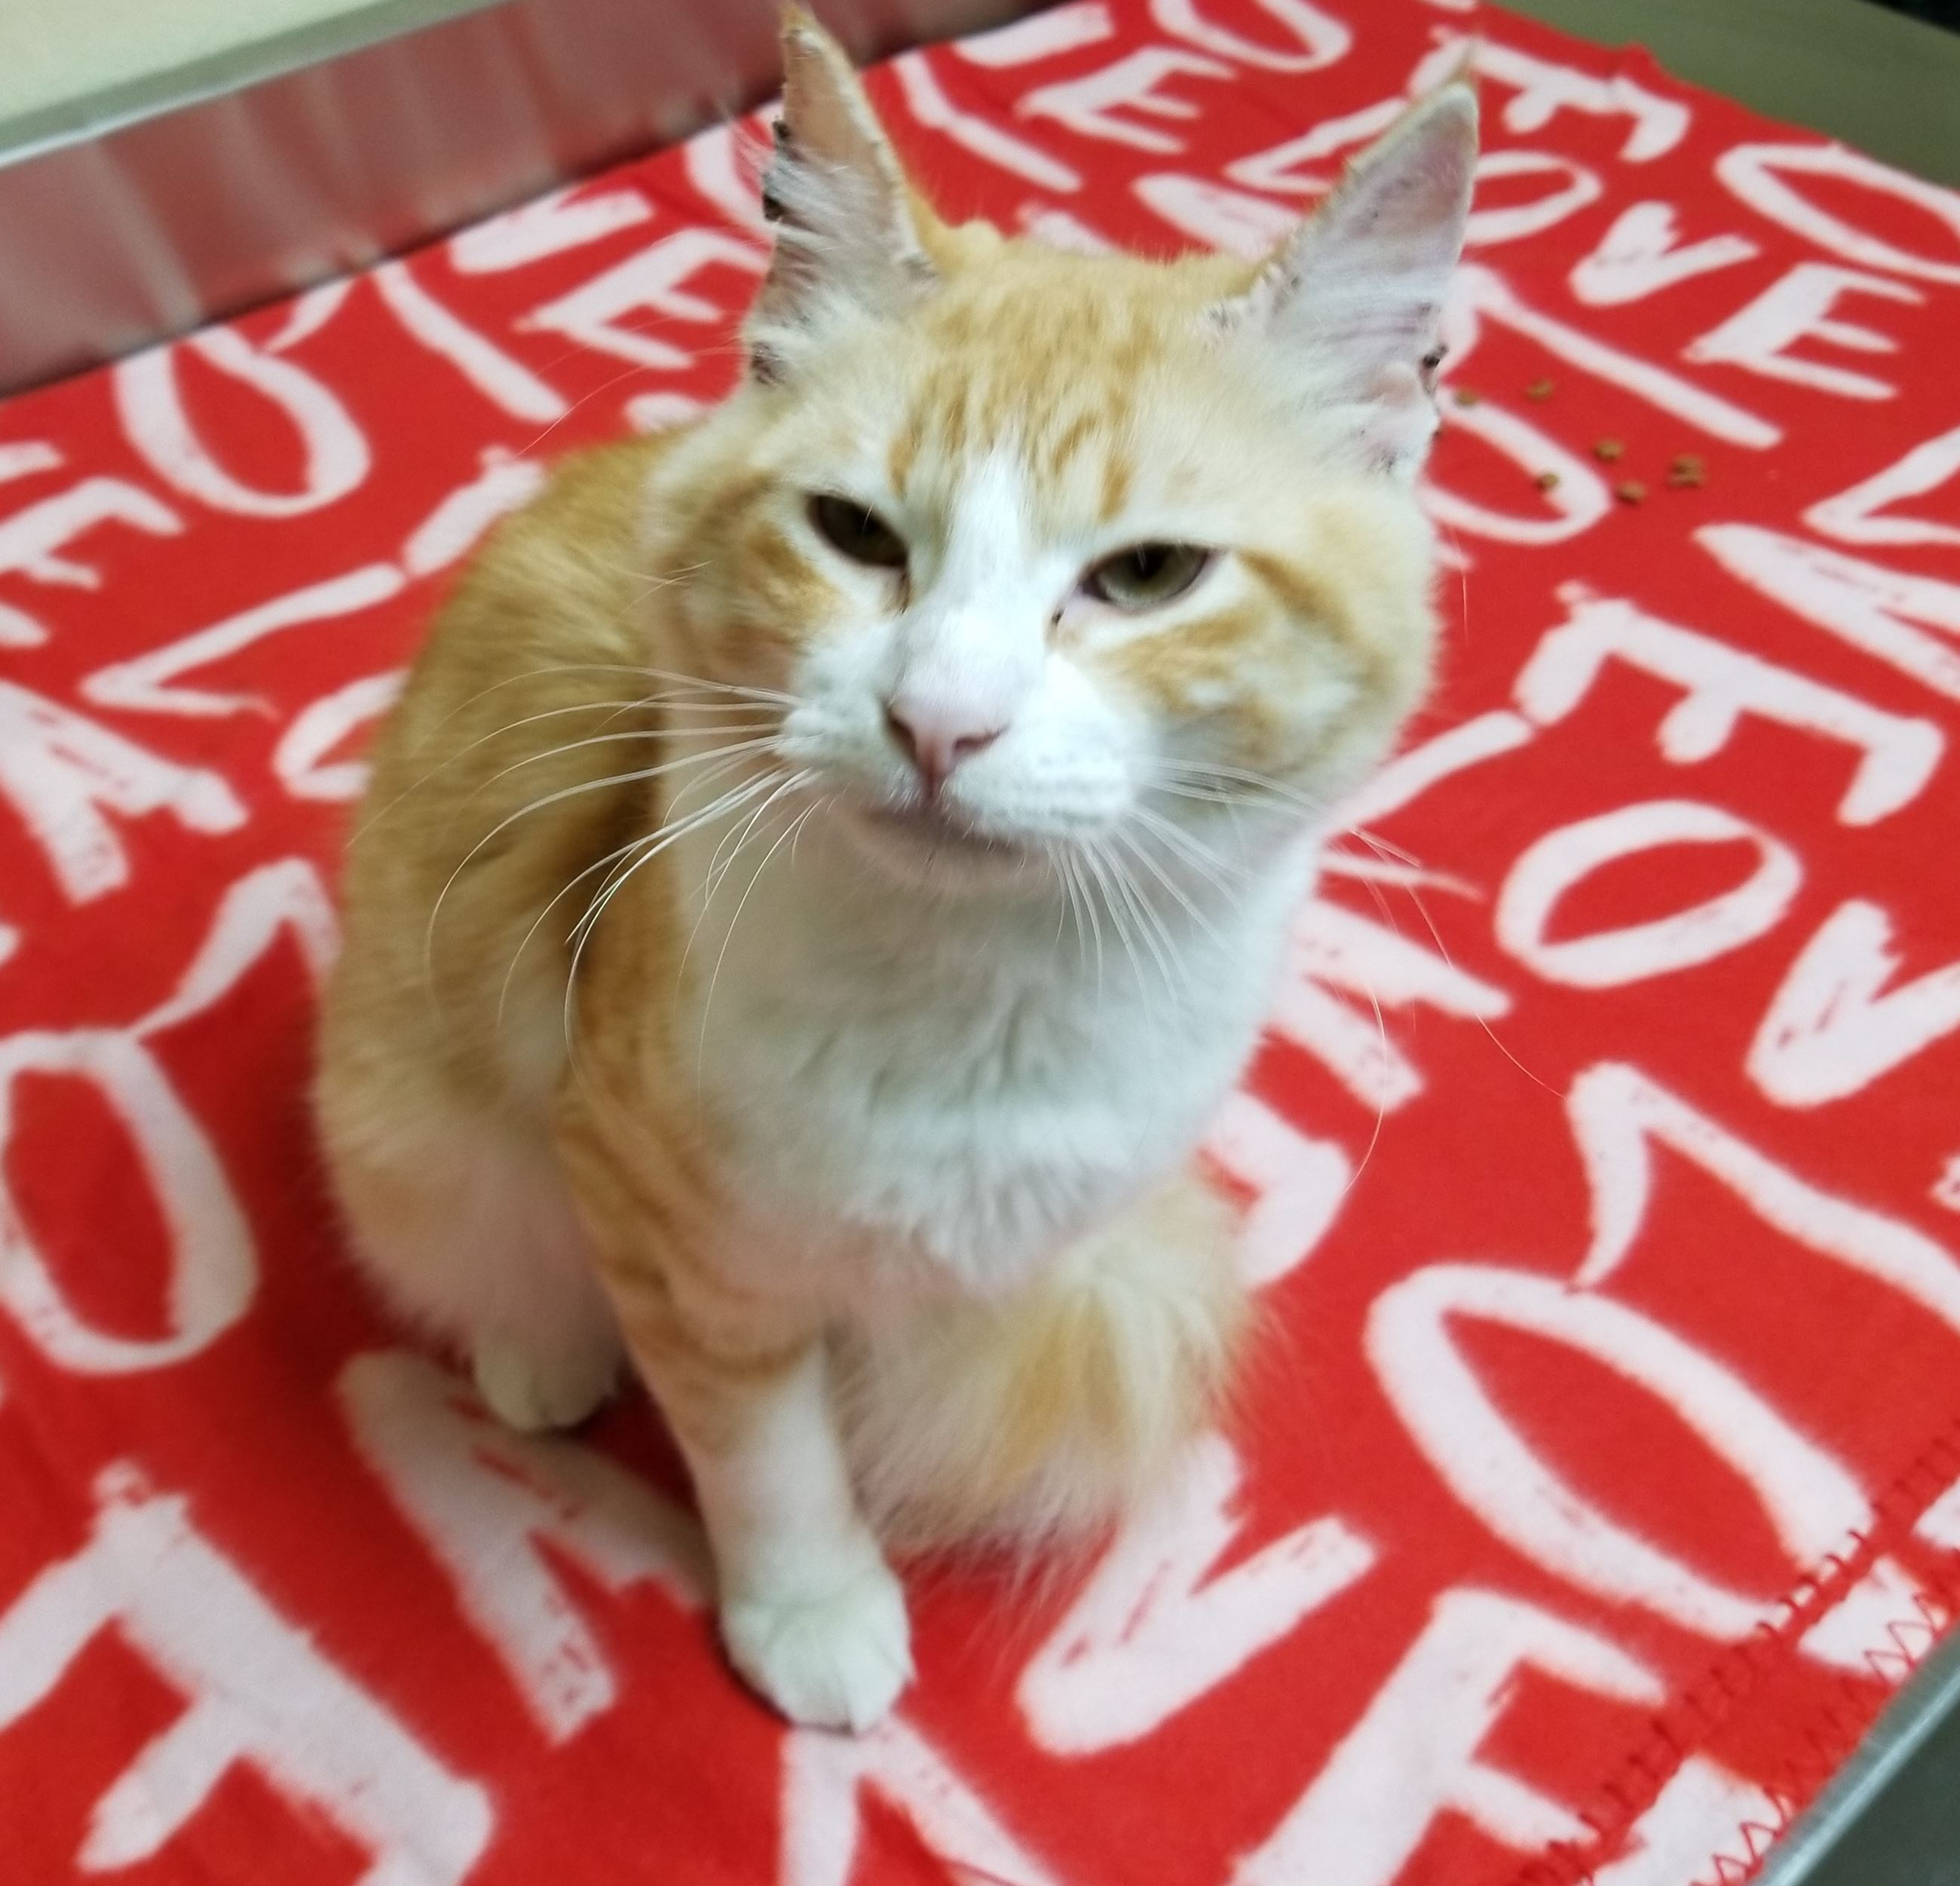 Nala 17-653 orange/white striped male cat